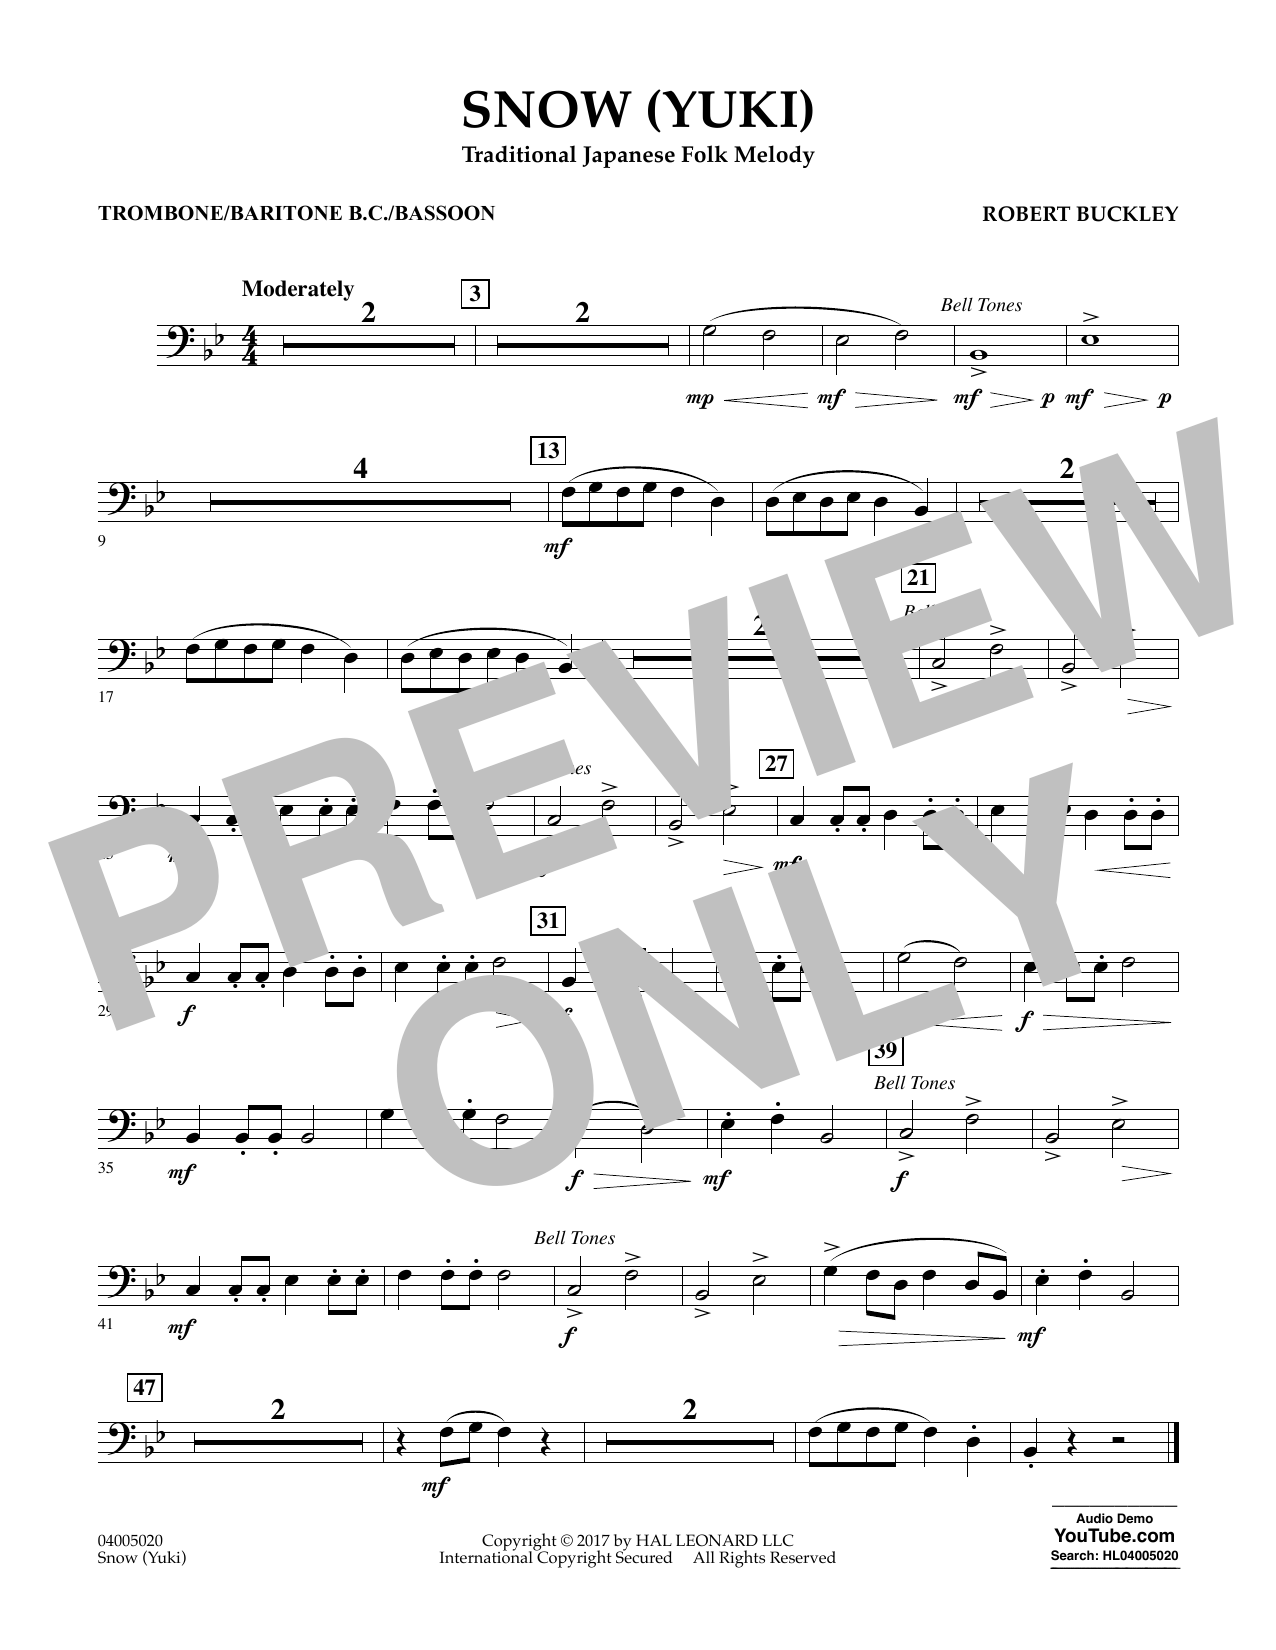 Snow (Yuki) - Trombone/Baritone B.C./Bassoon Partition Digitale